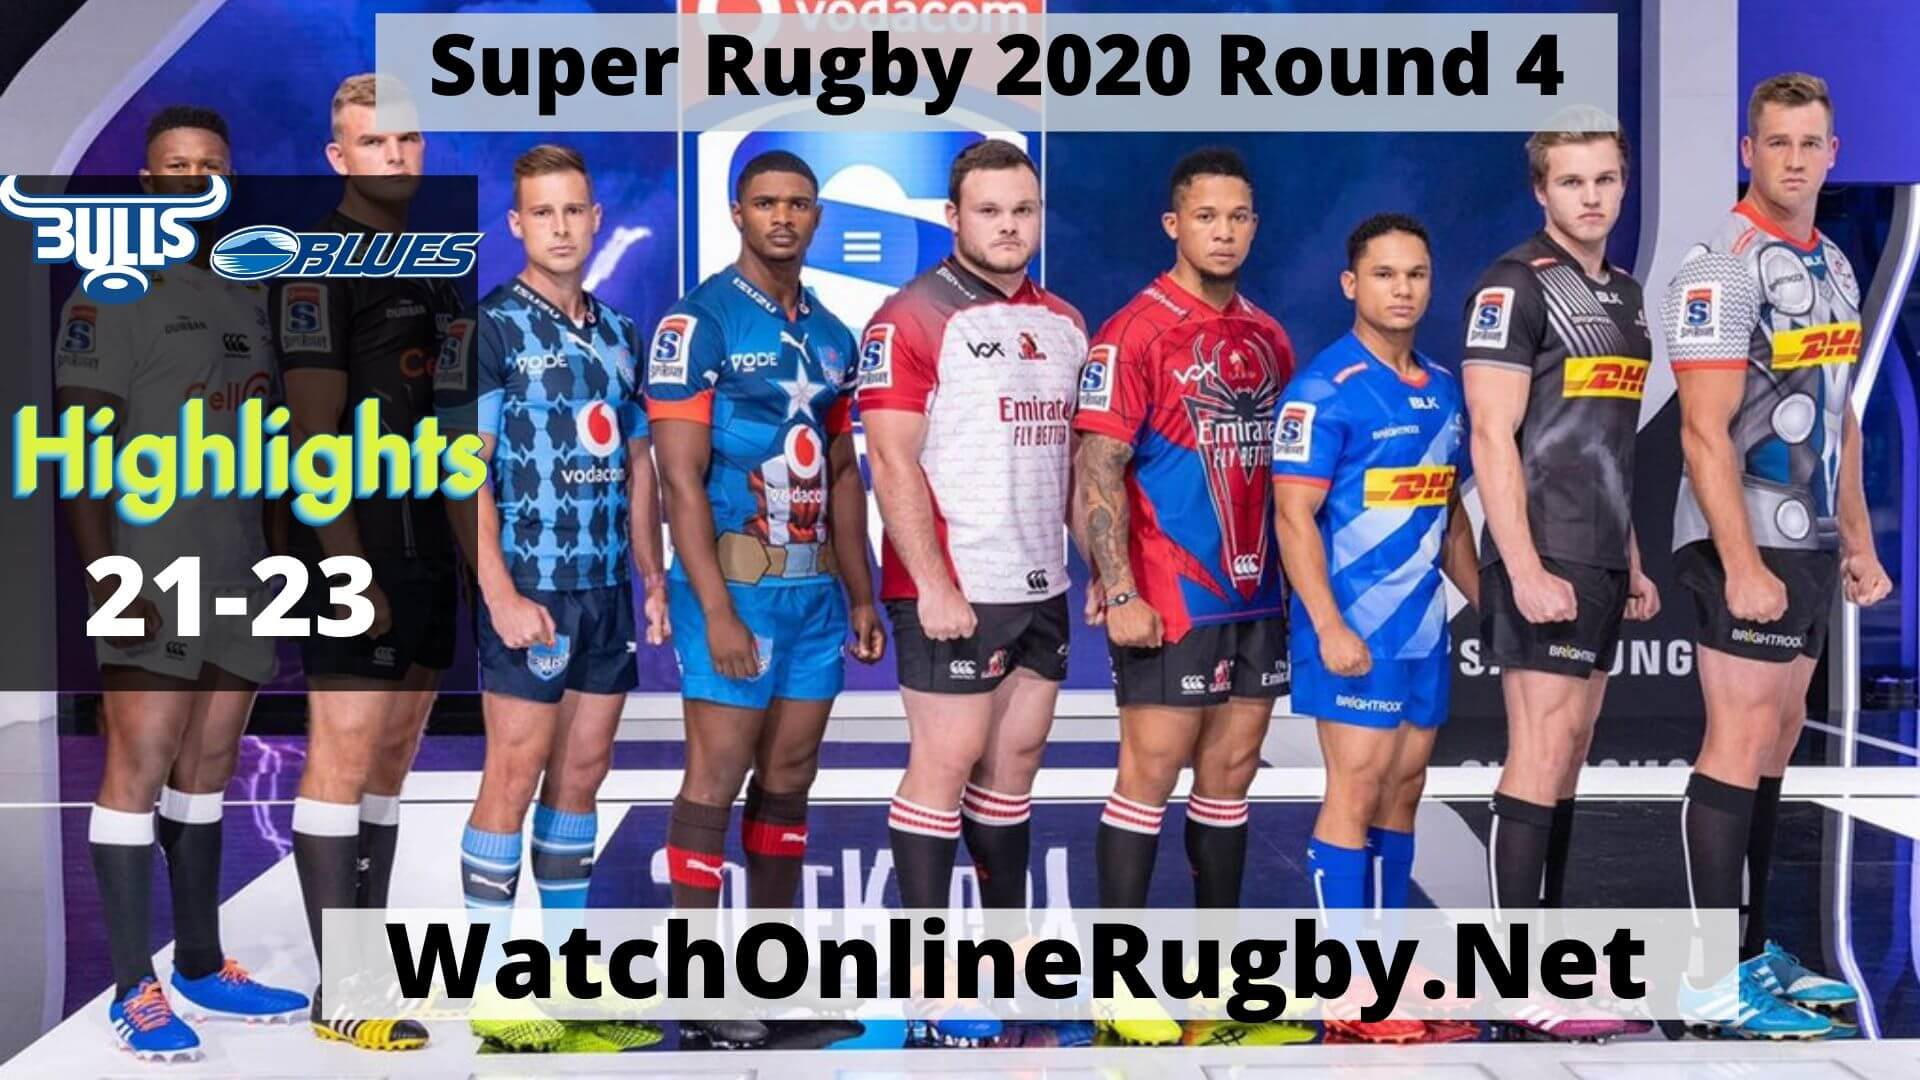 Bulls Vs Blues Result Highlights 2020 Super Rugby Rd 4